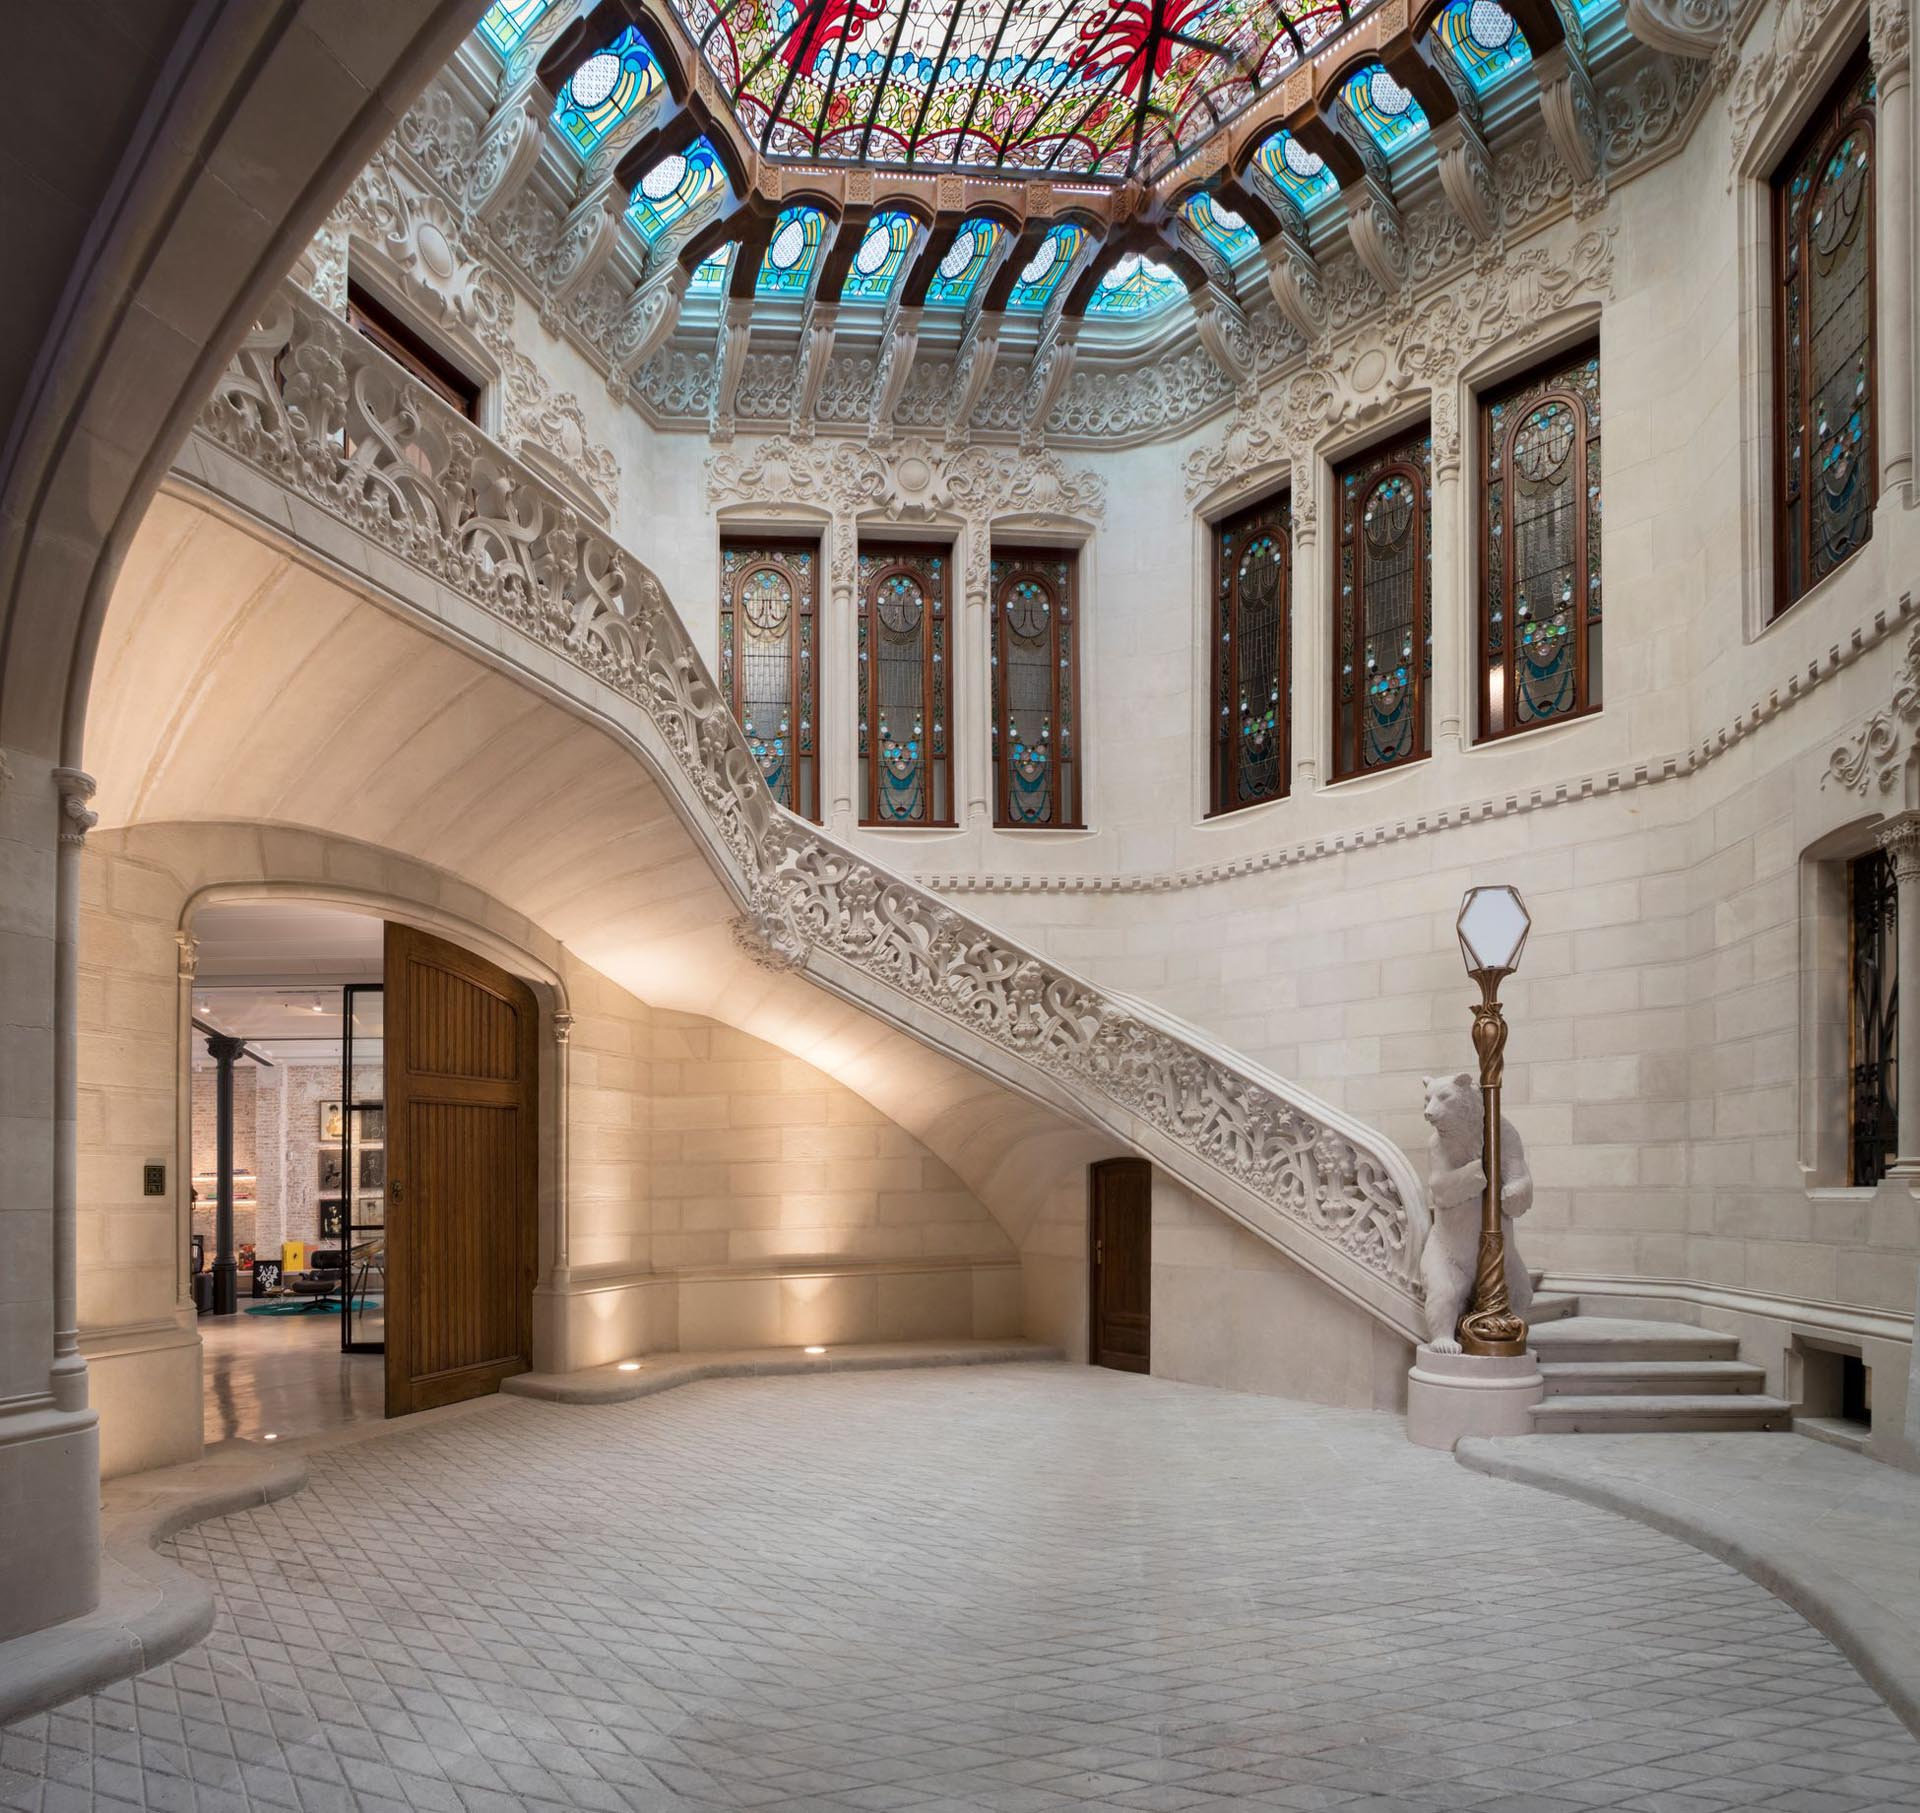 Casa Bures was originally commissioned back in 1905 by Catalan textile magnate Francesc Bures and built by Gaudi contemporary Francesc Berenguer.